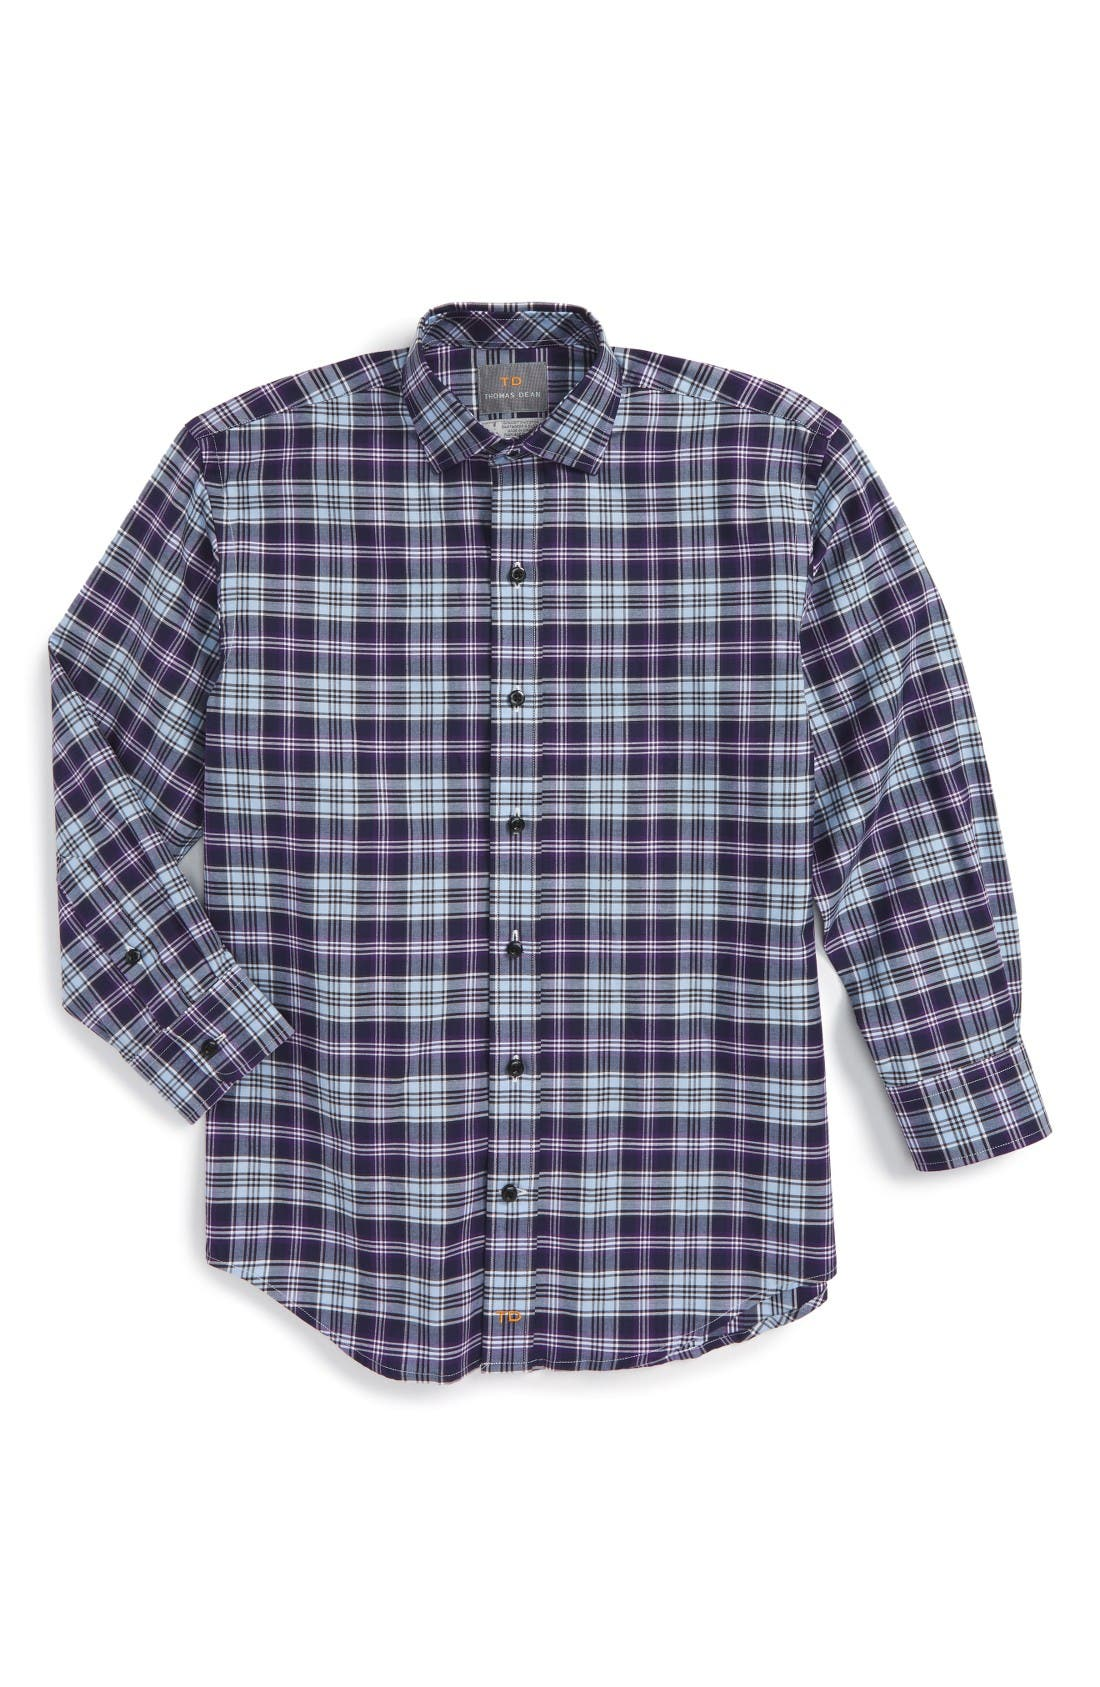 Main Image - Thomas Dean Plaid Dress Shirt (Little Boys & Big Boys)